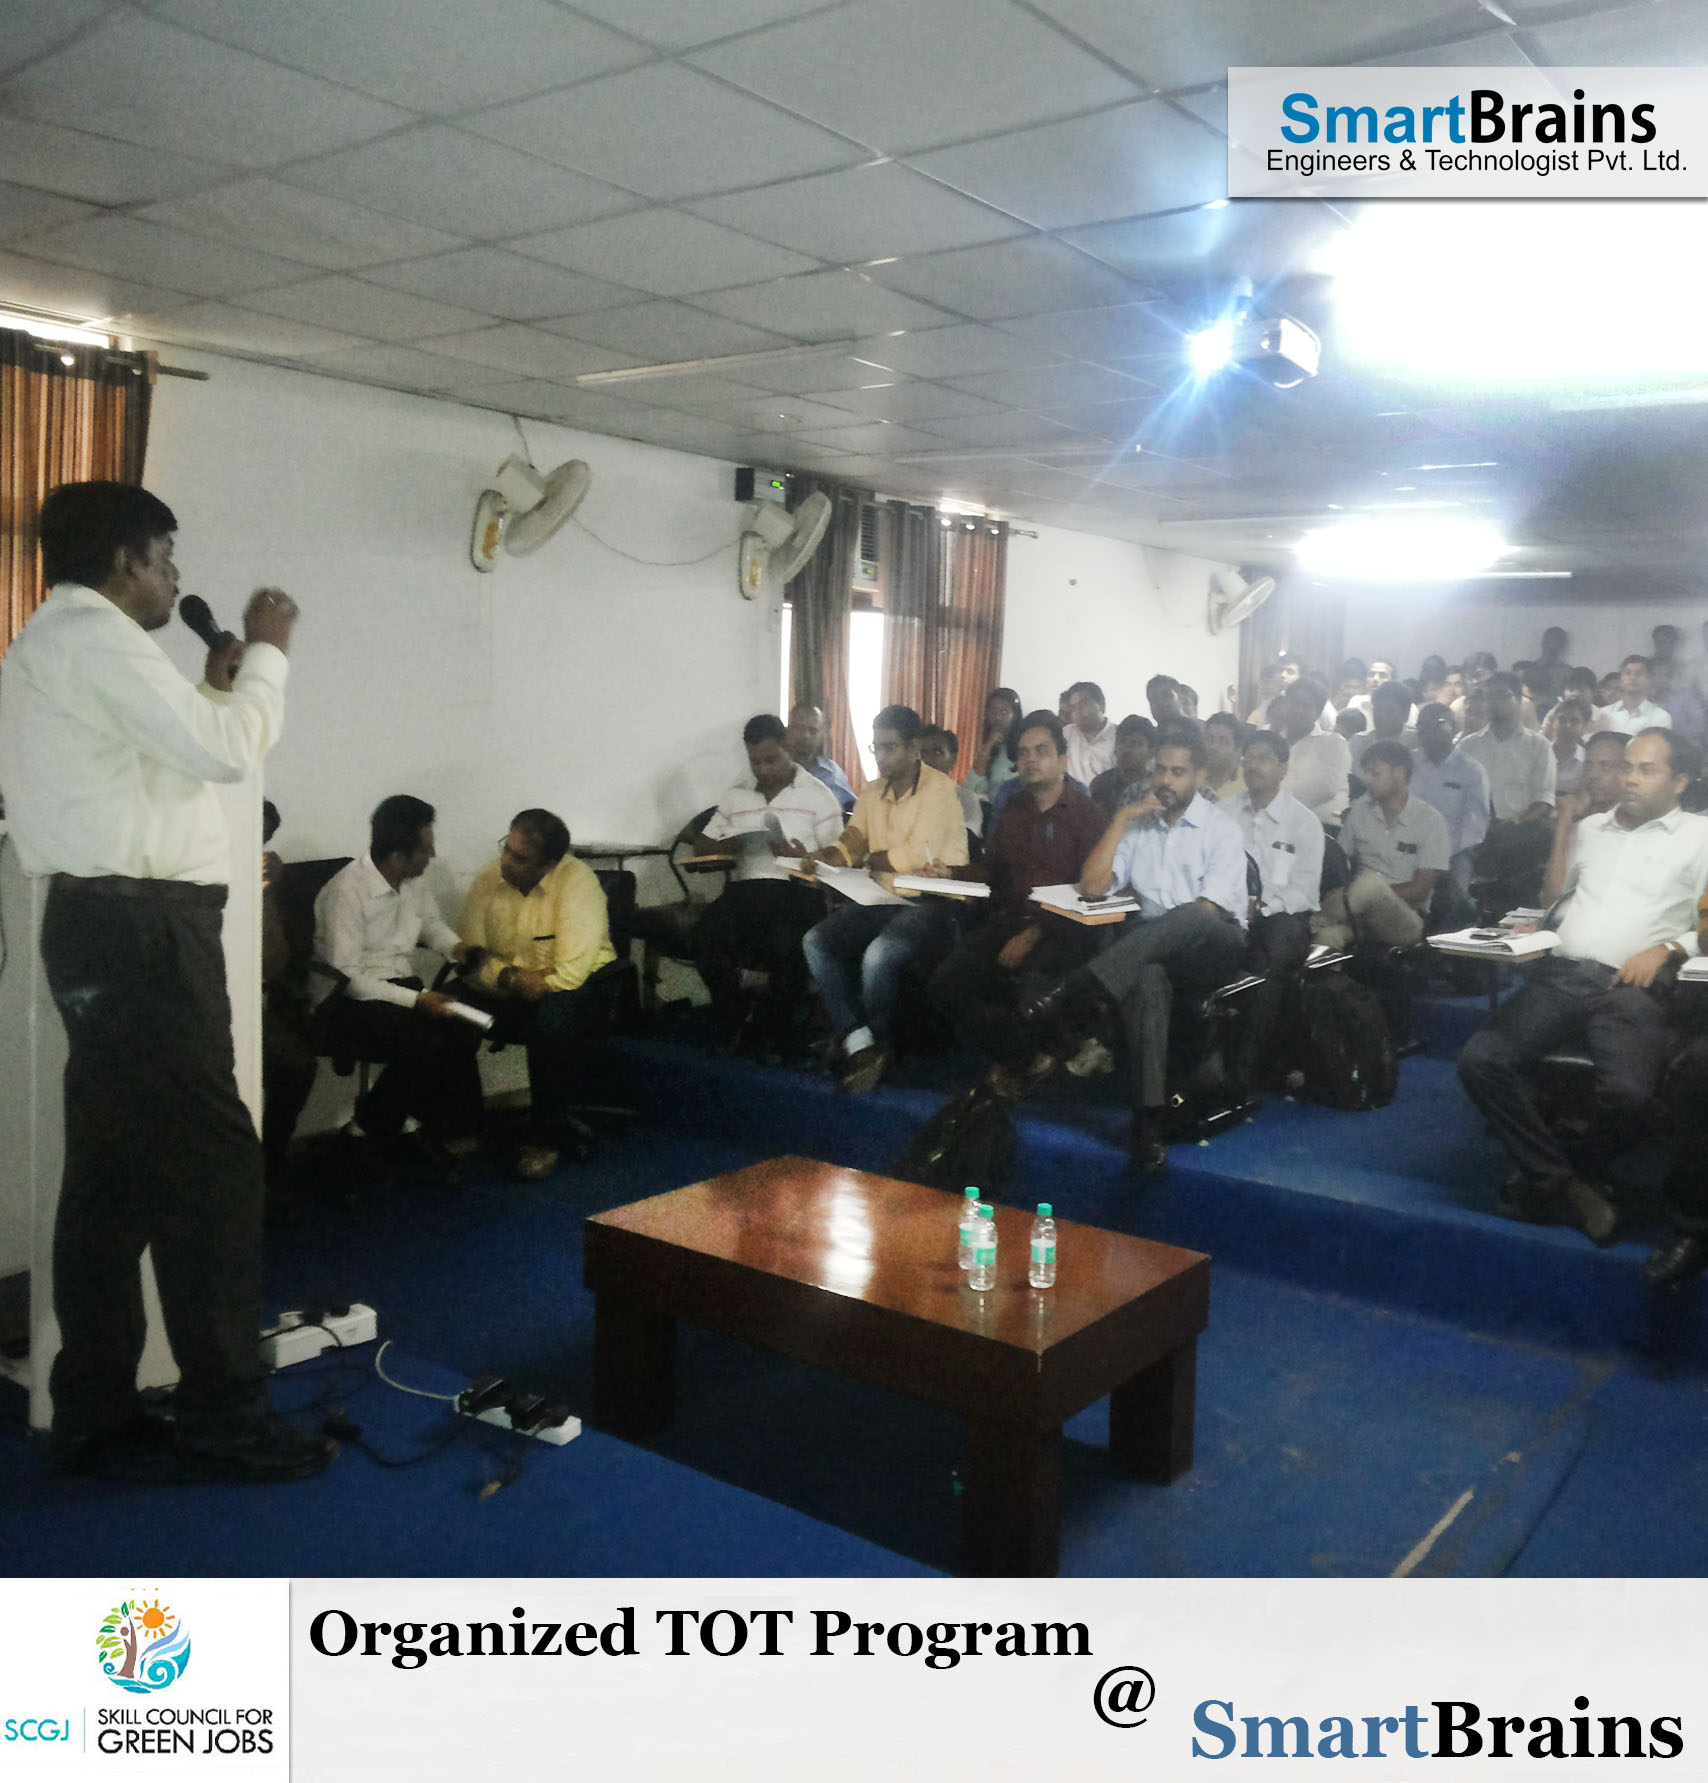 A Govt Certified Engineering Training Company Smart